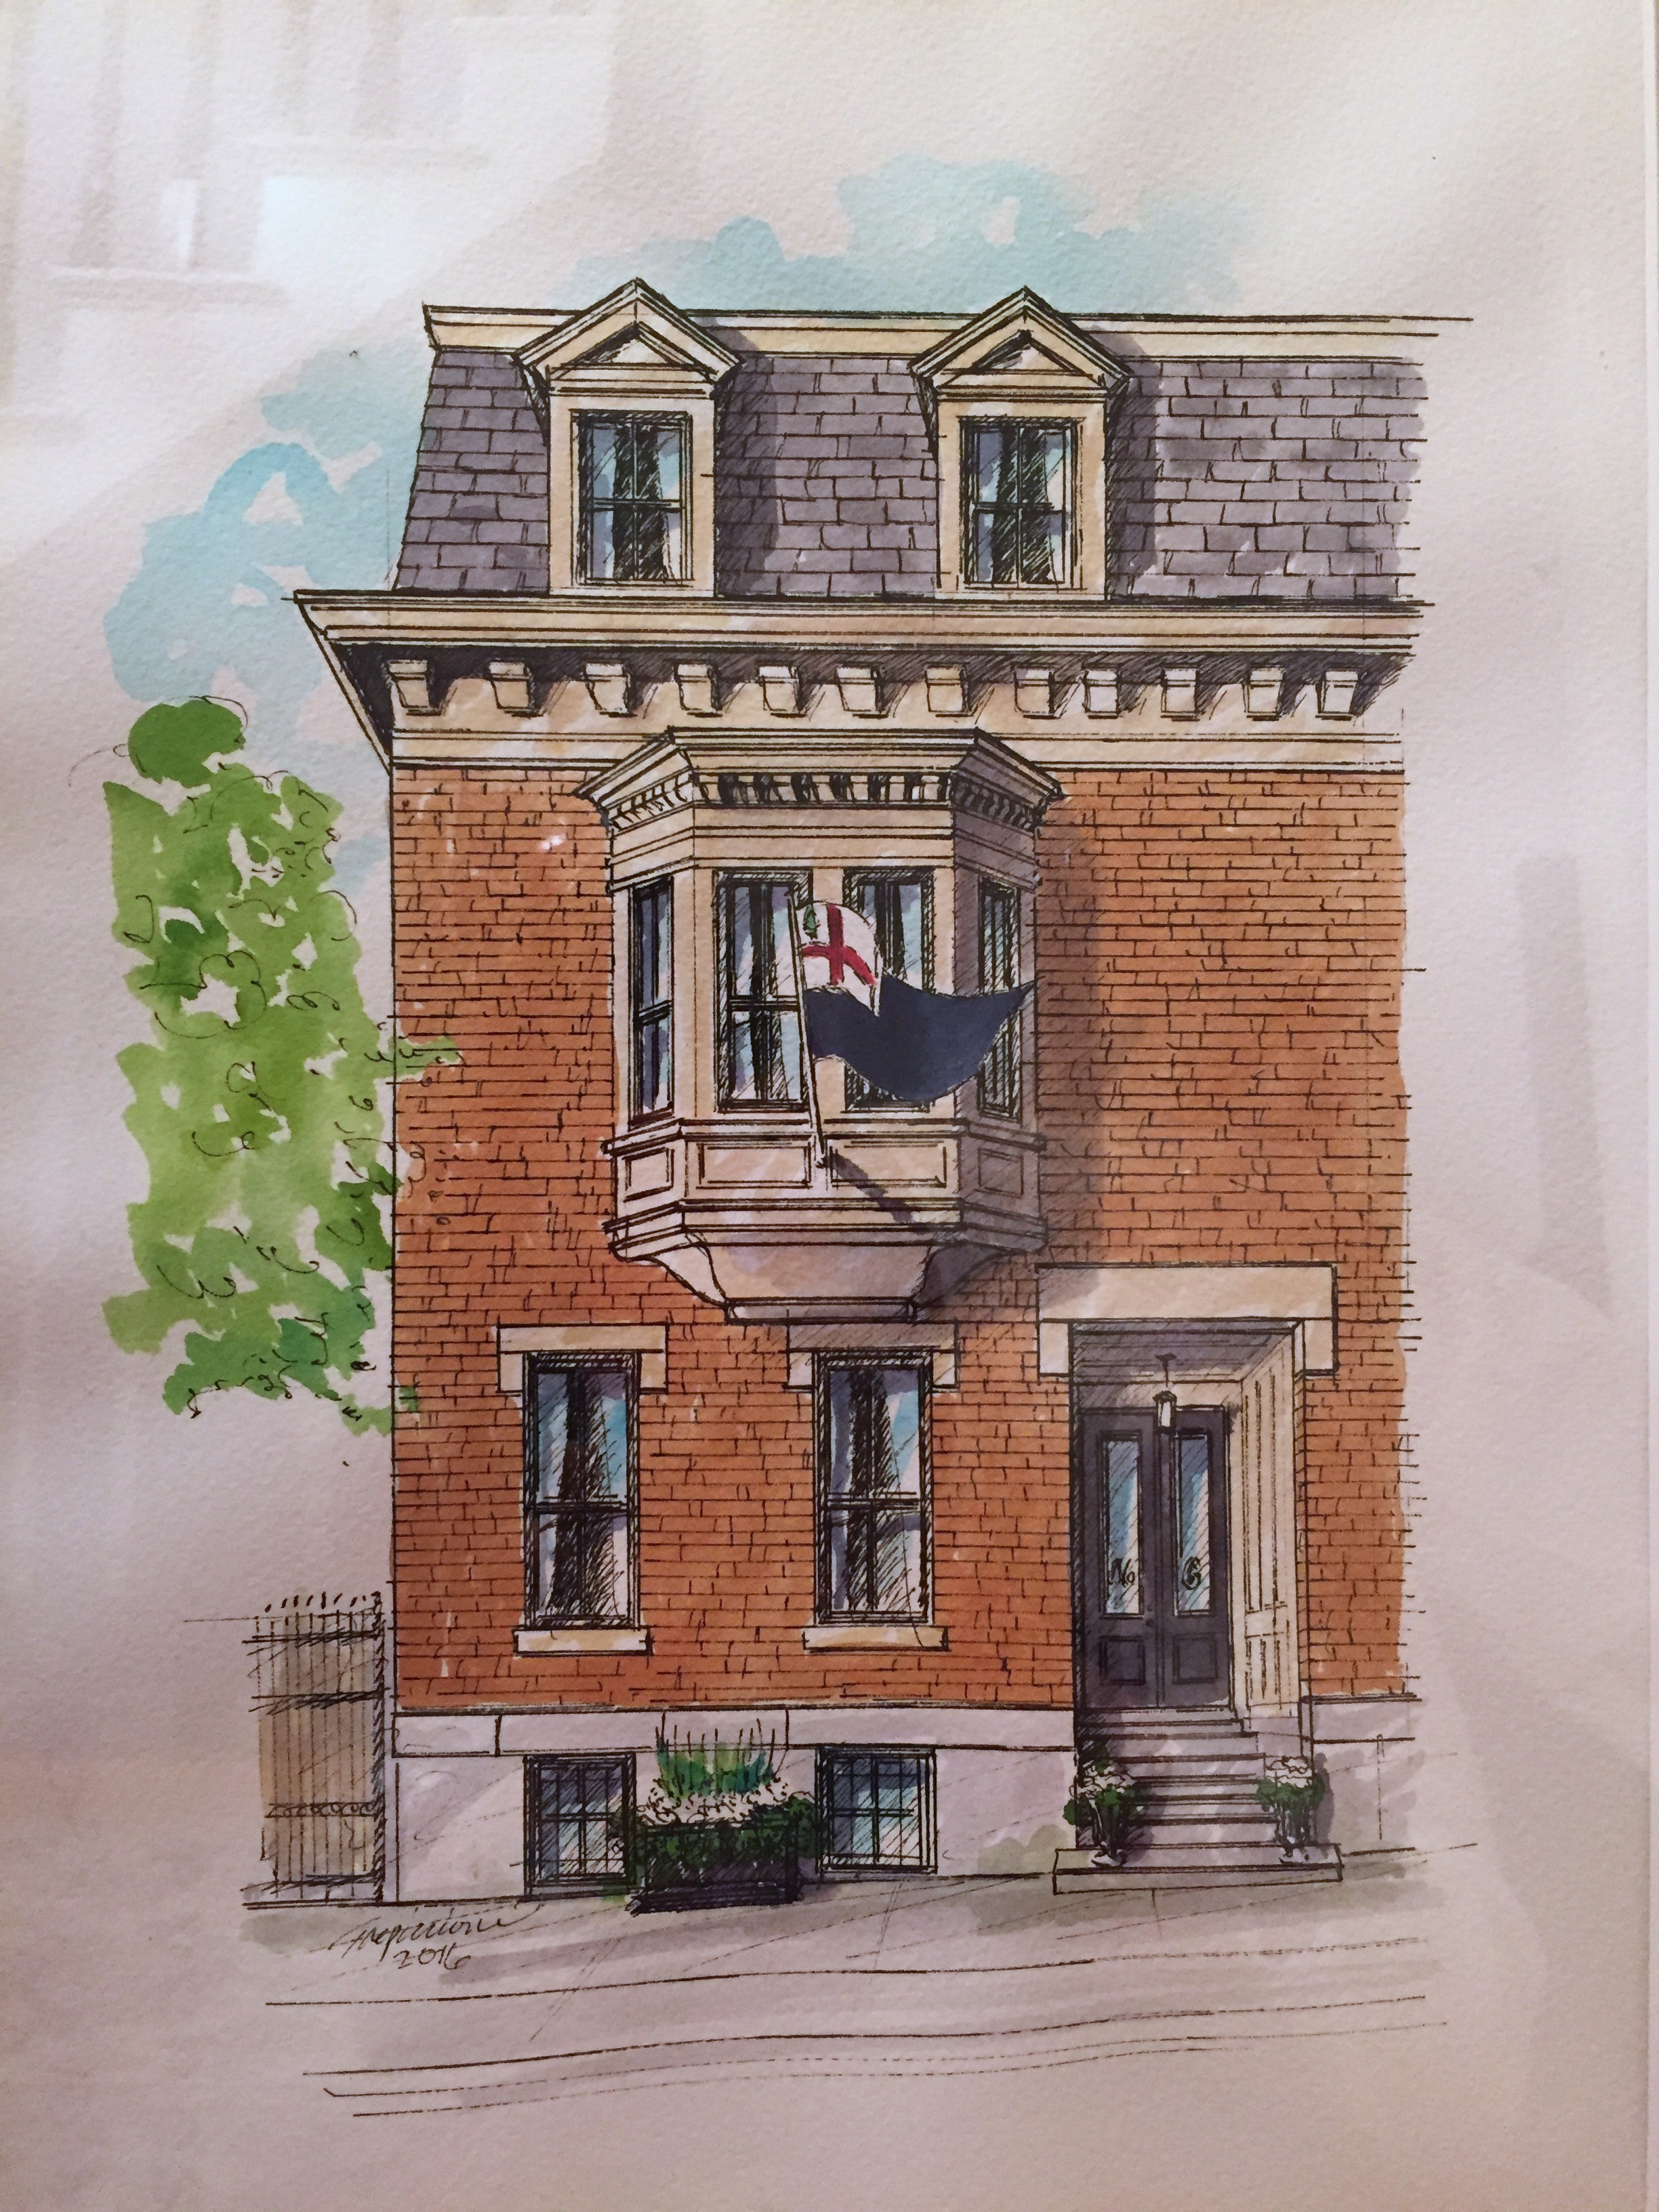 Our gift for participating: A watercolor of our home.